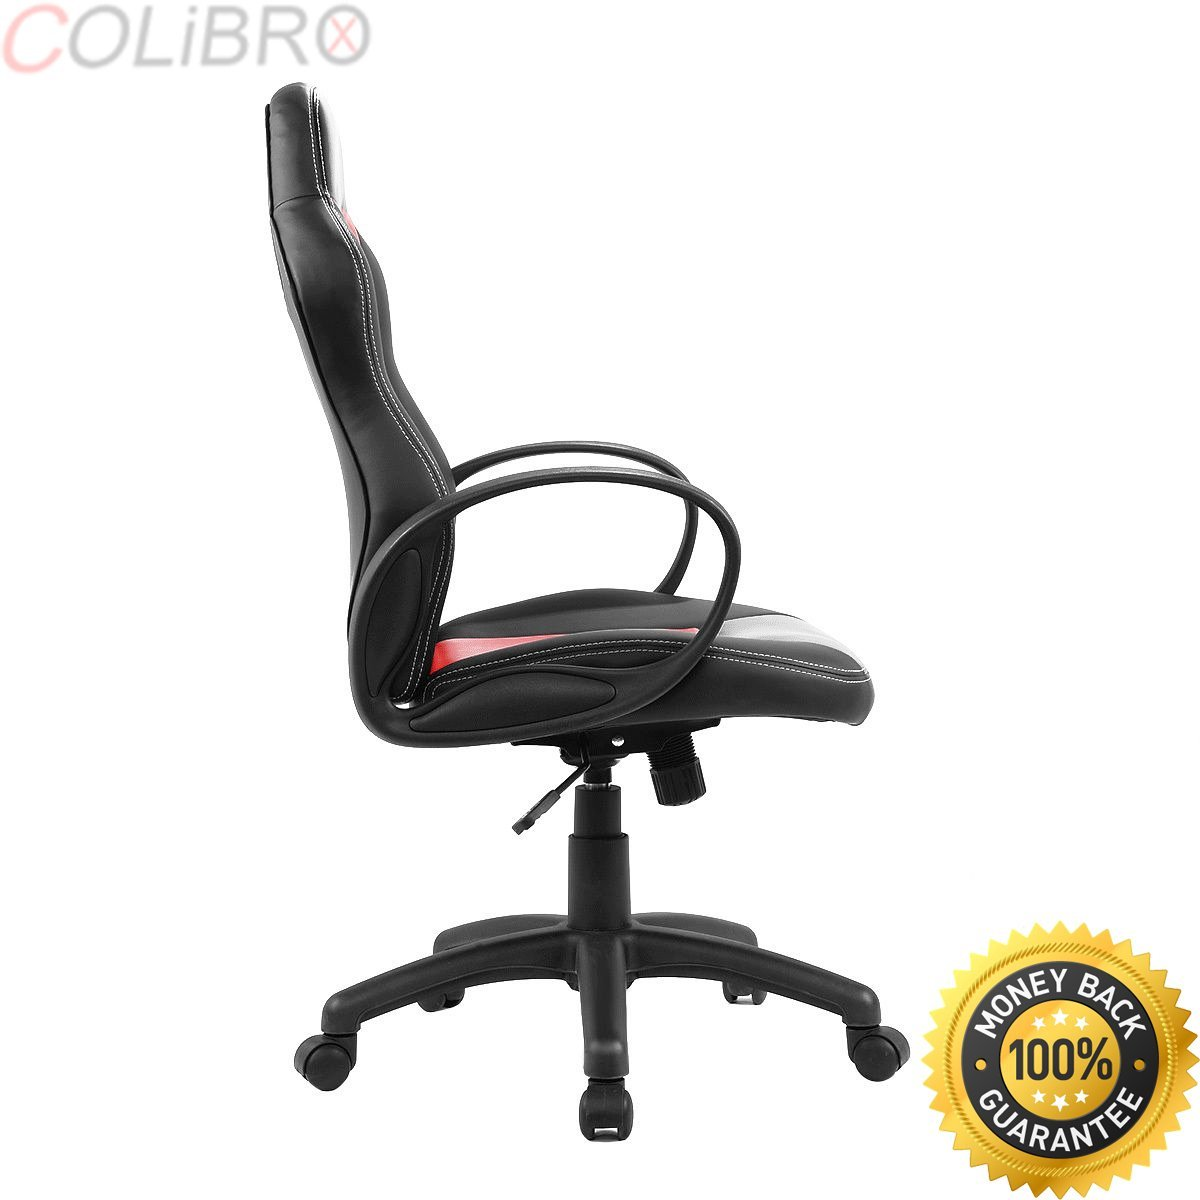 racing seat office chair diy g plan chairs cheap gaming find deals on line at alibaba com get quotations colibrox new high back race car style bucket desk